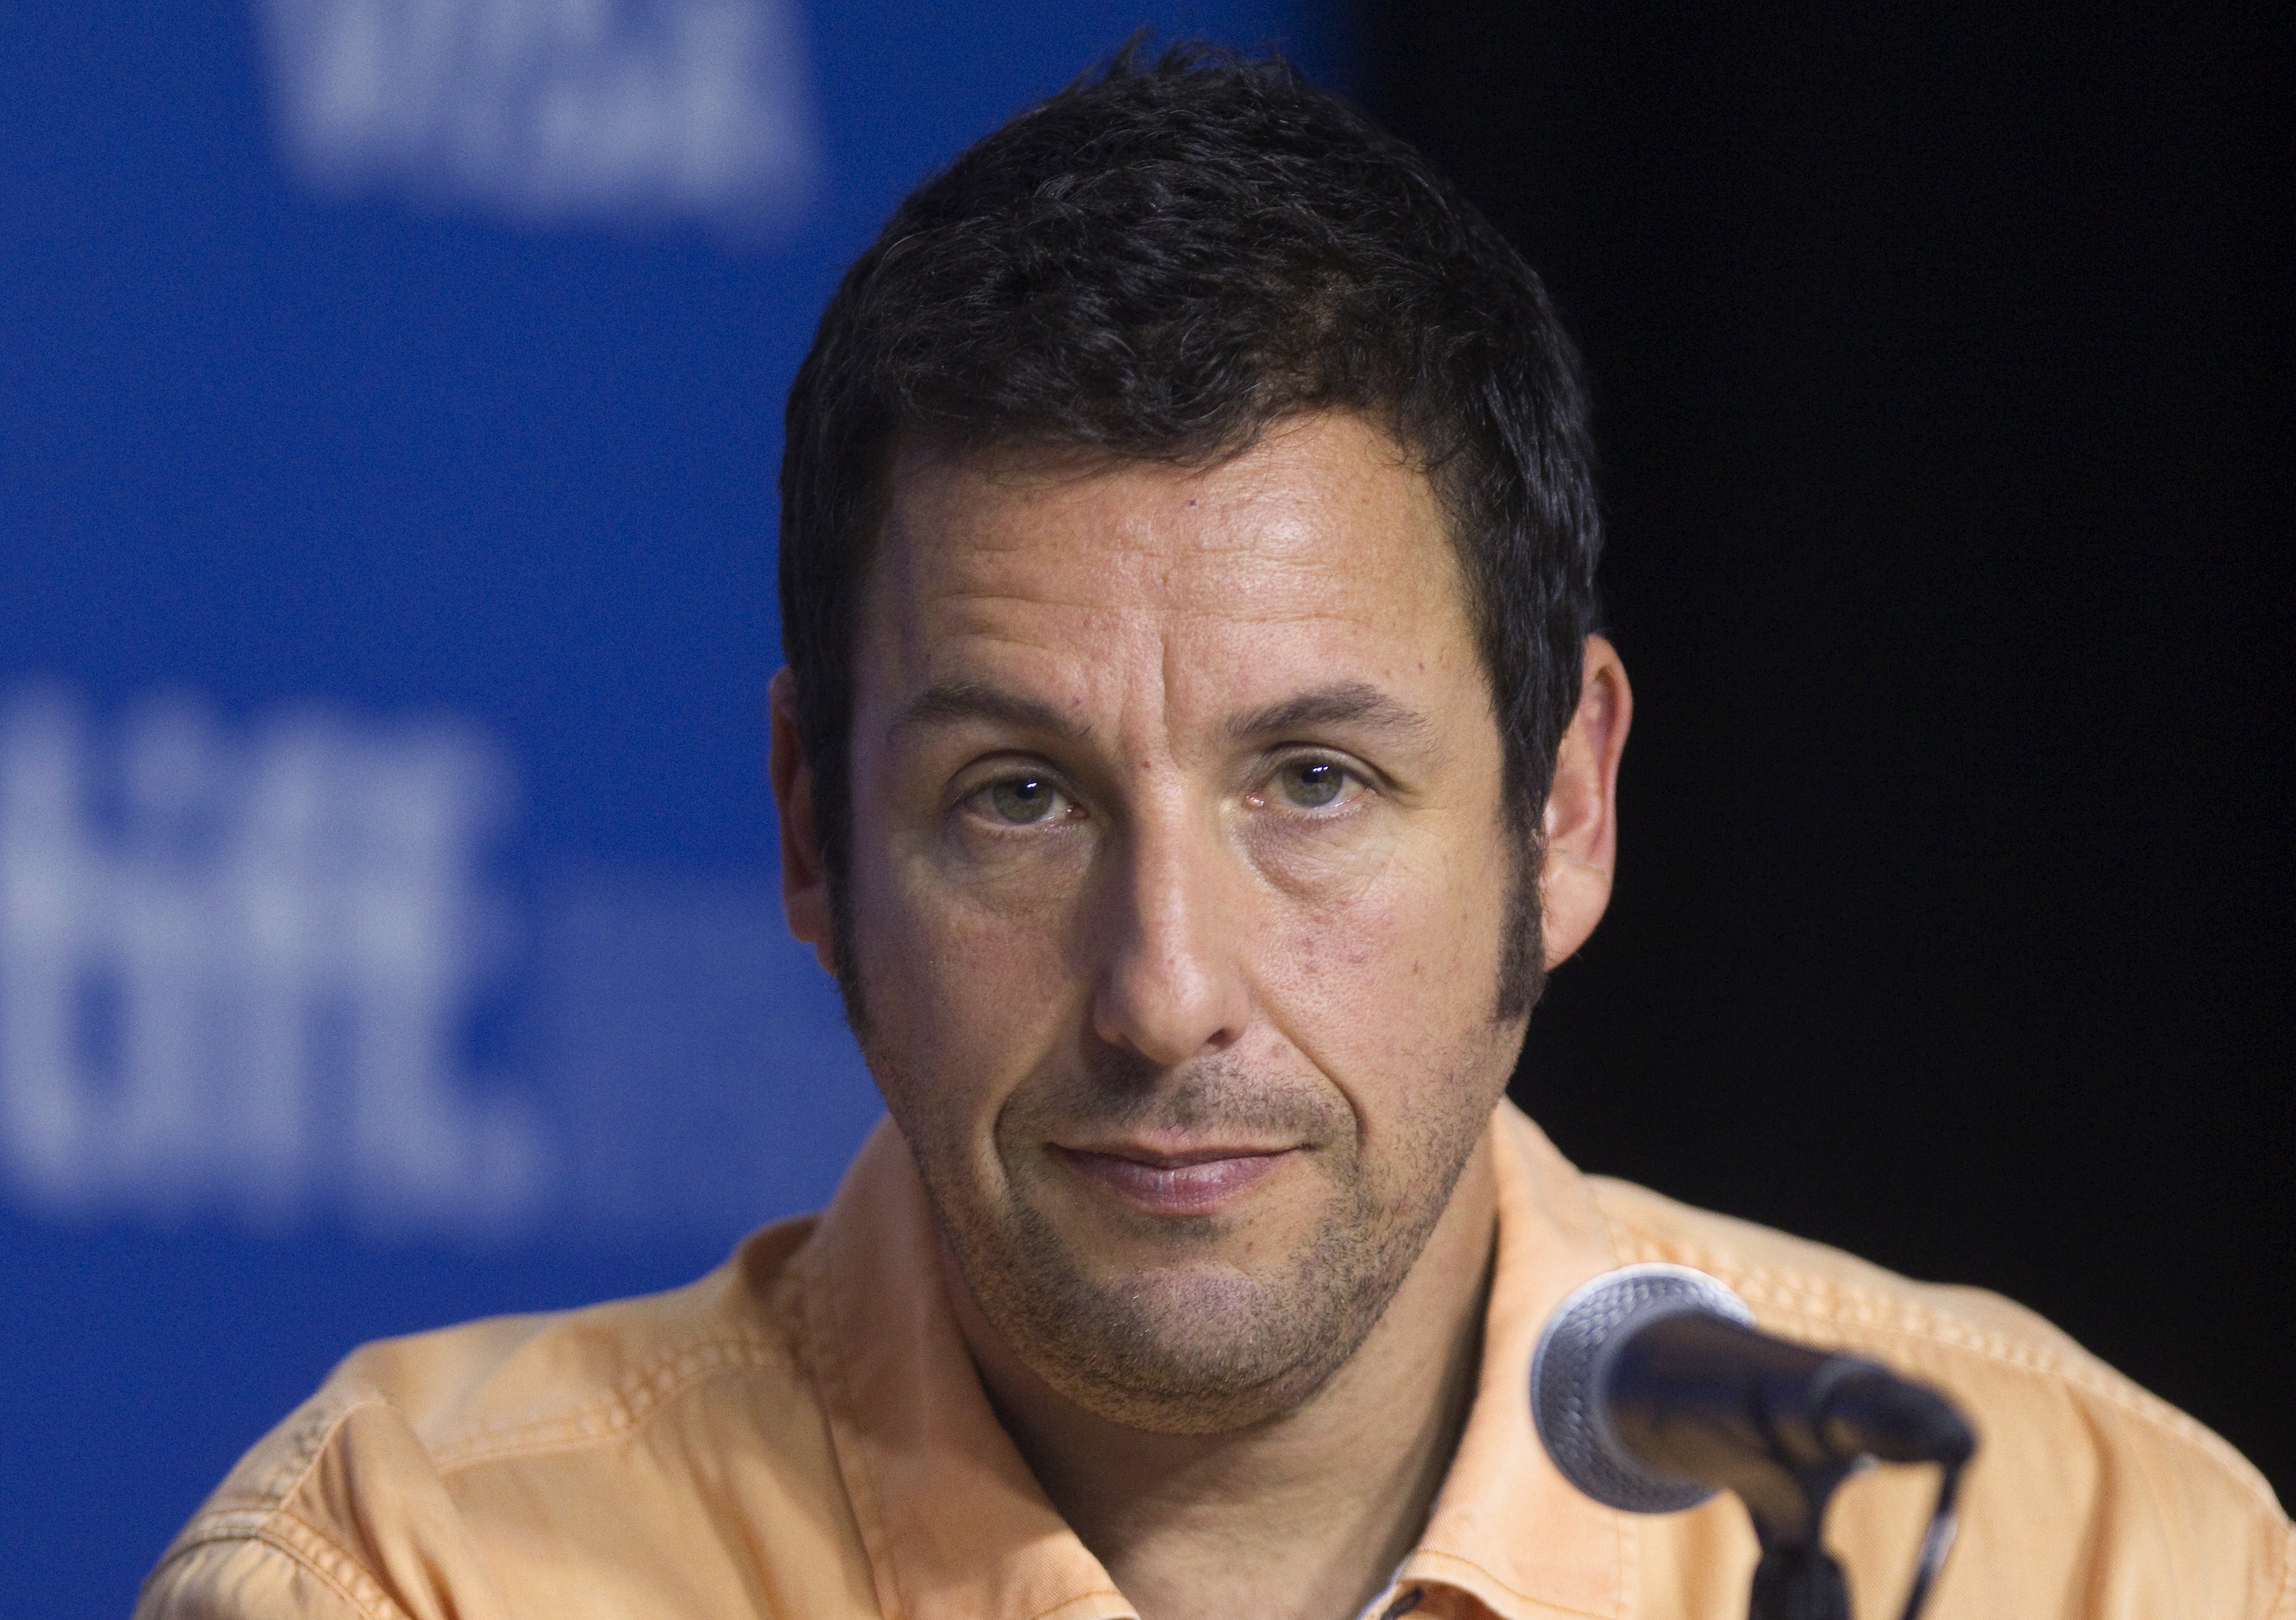 a biography of adam sandler an american actor Adam richard sandler is one of the populat american actors, comedians, screenwriters, film producers, and musicians he was born on 9 september 1966 in brooklyn, new york he is the son of judith and stanely sandle.